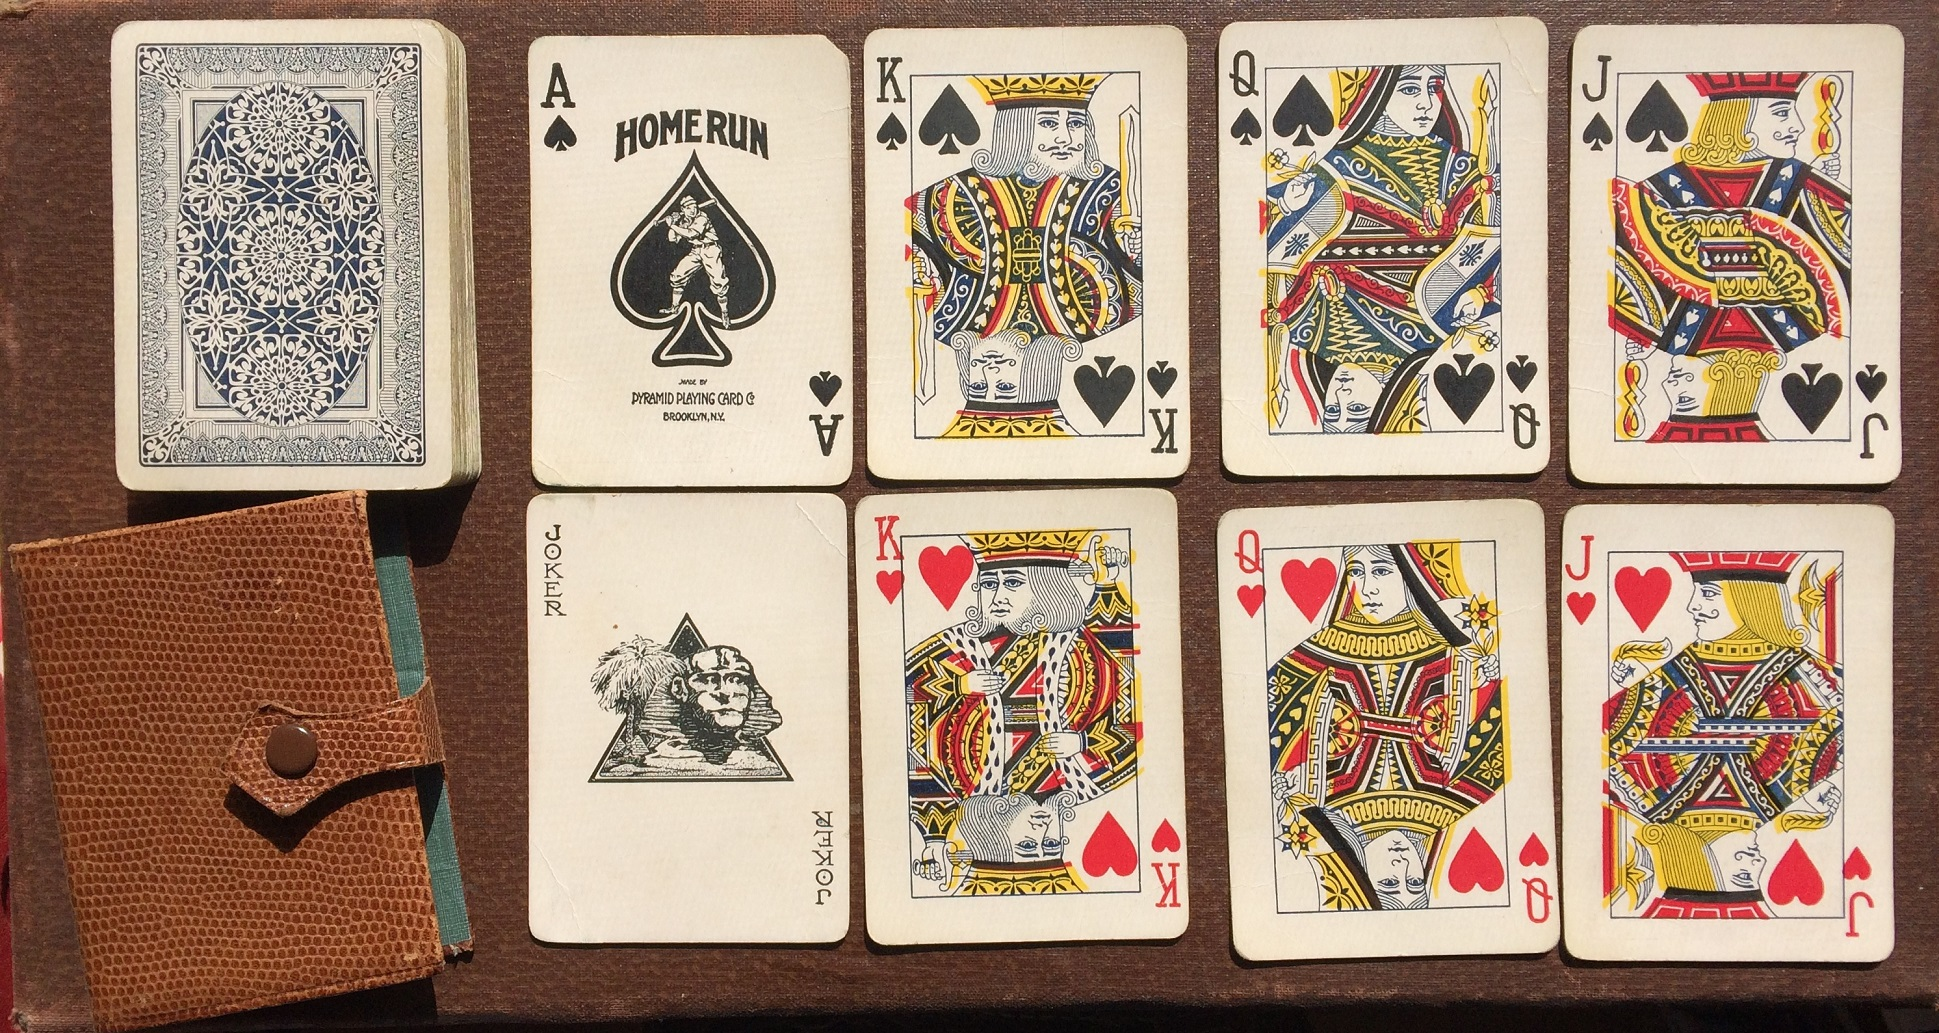 Pyramid Playng Card Co. - Home Run.JPG